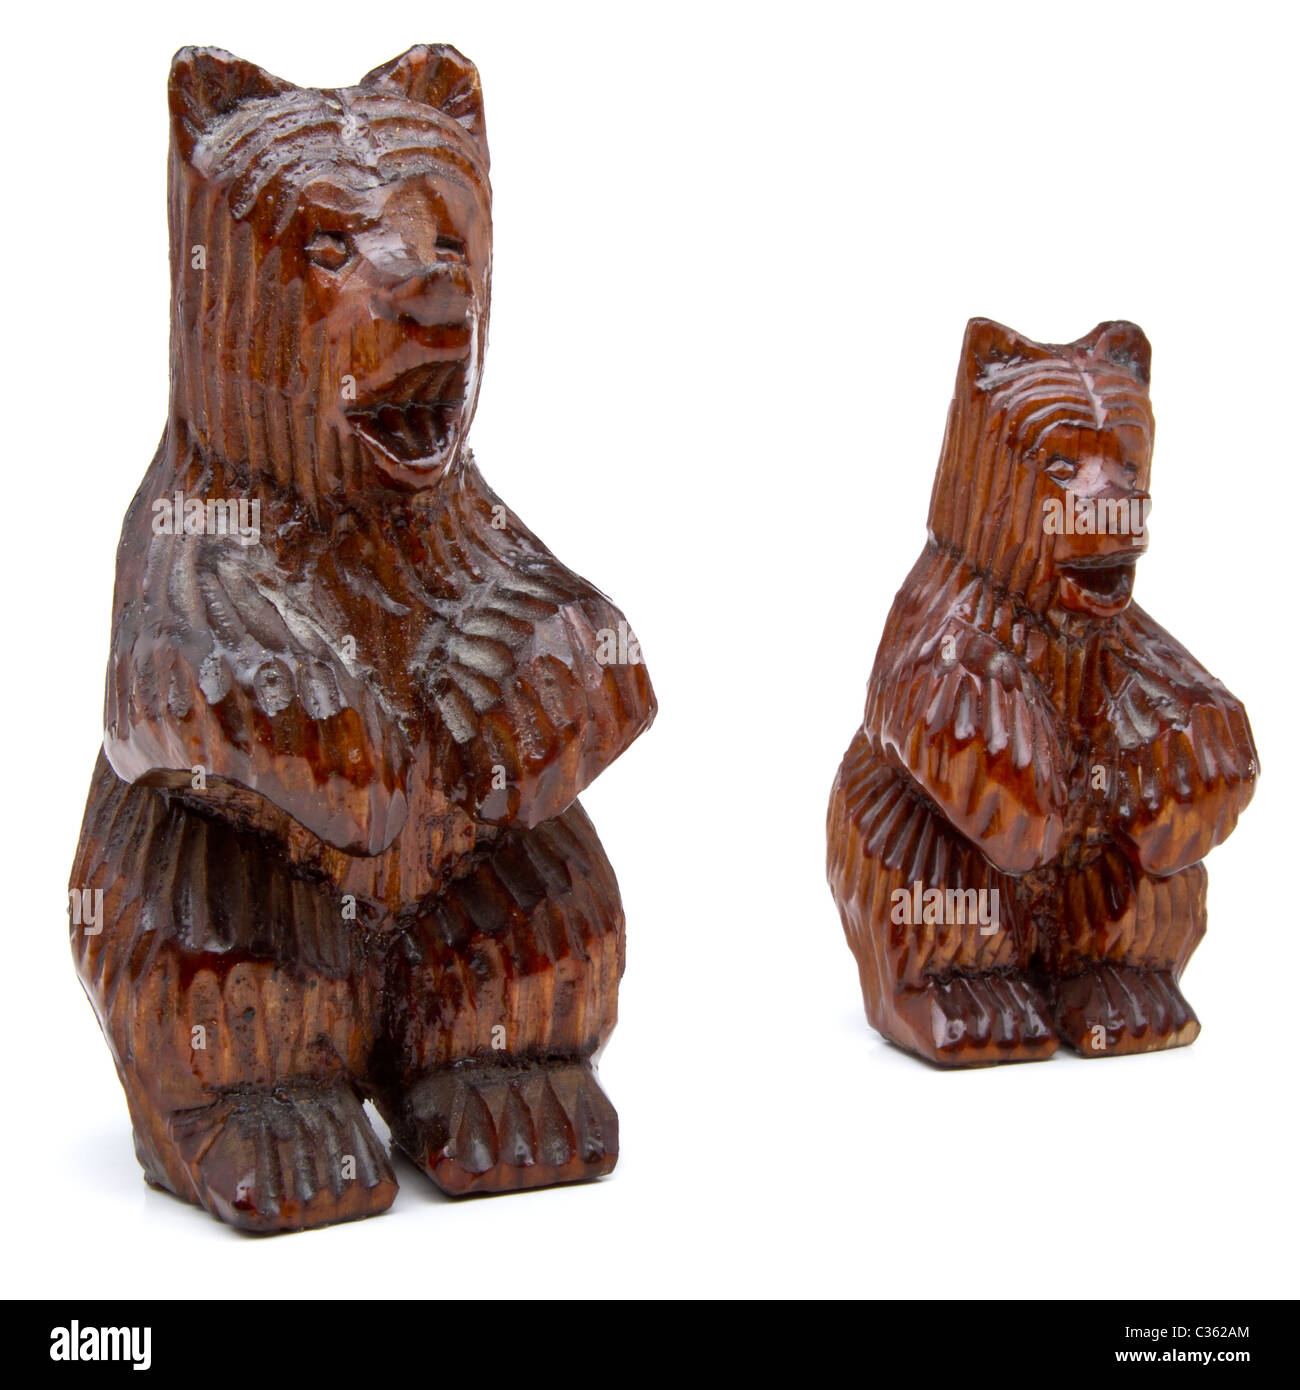 Wooden Carved Bears Stock Photos Wooden Carved Bears Stock Images